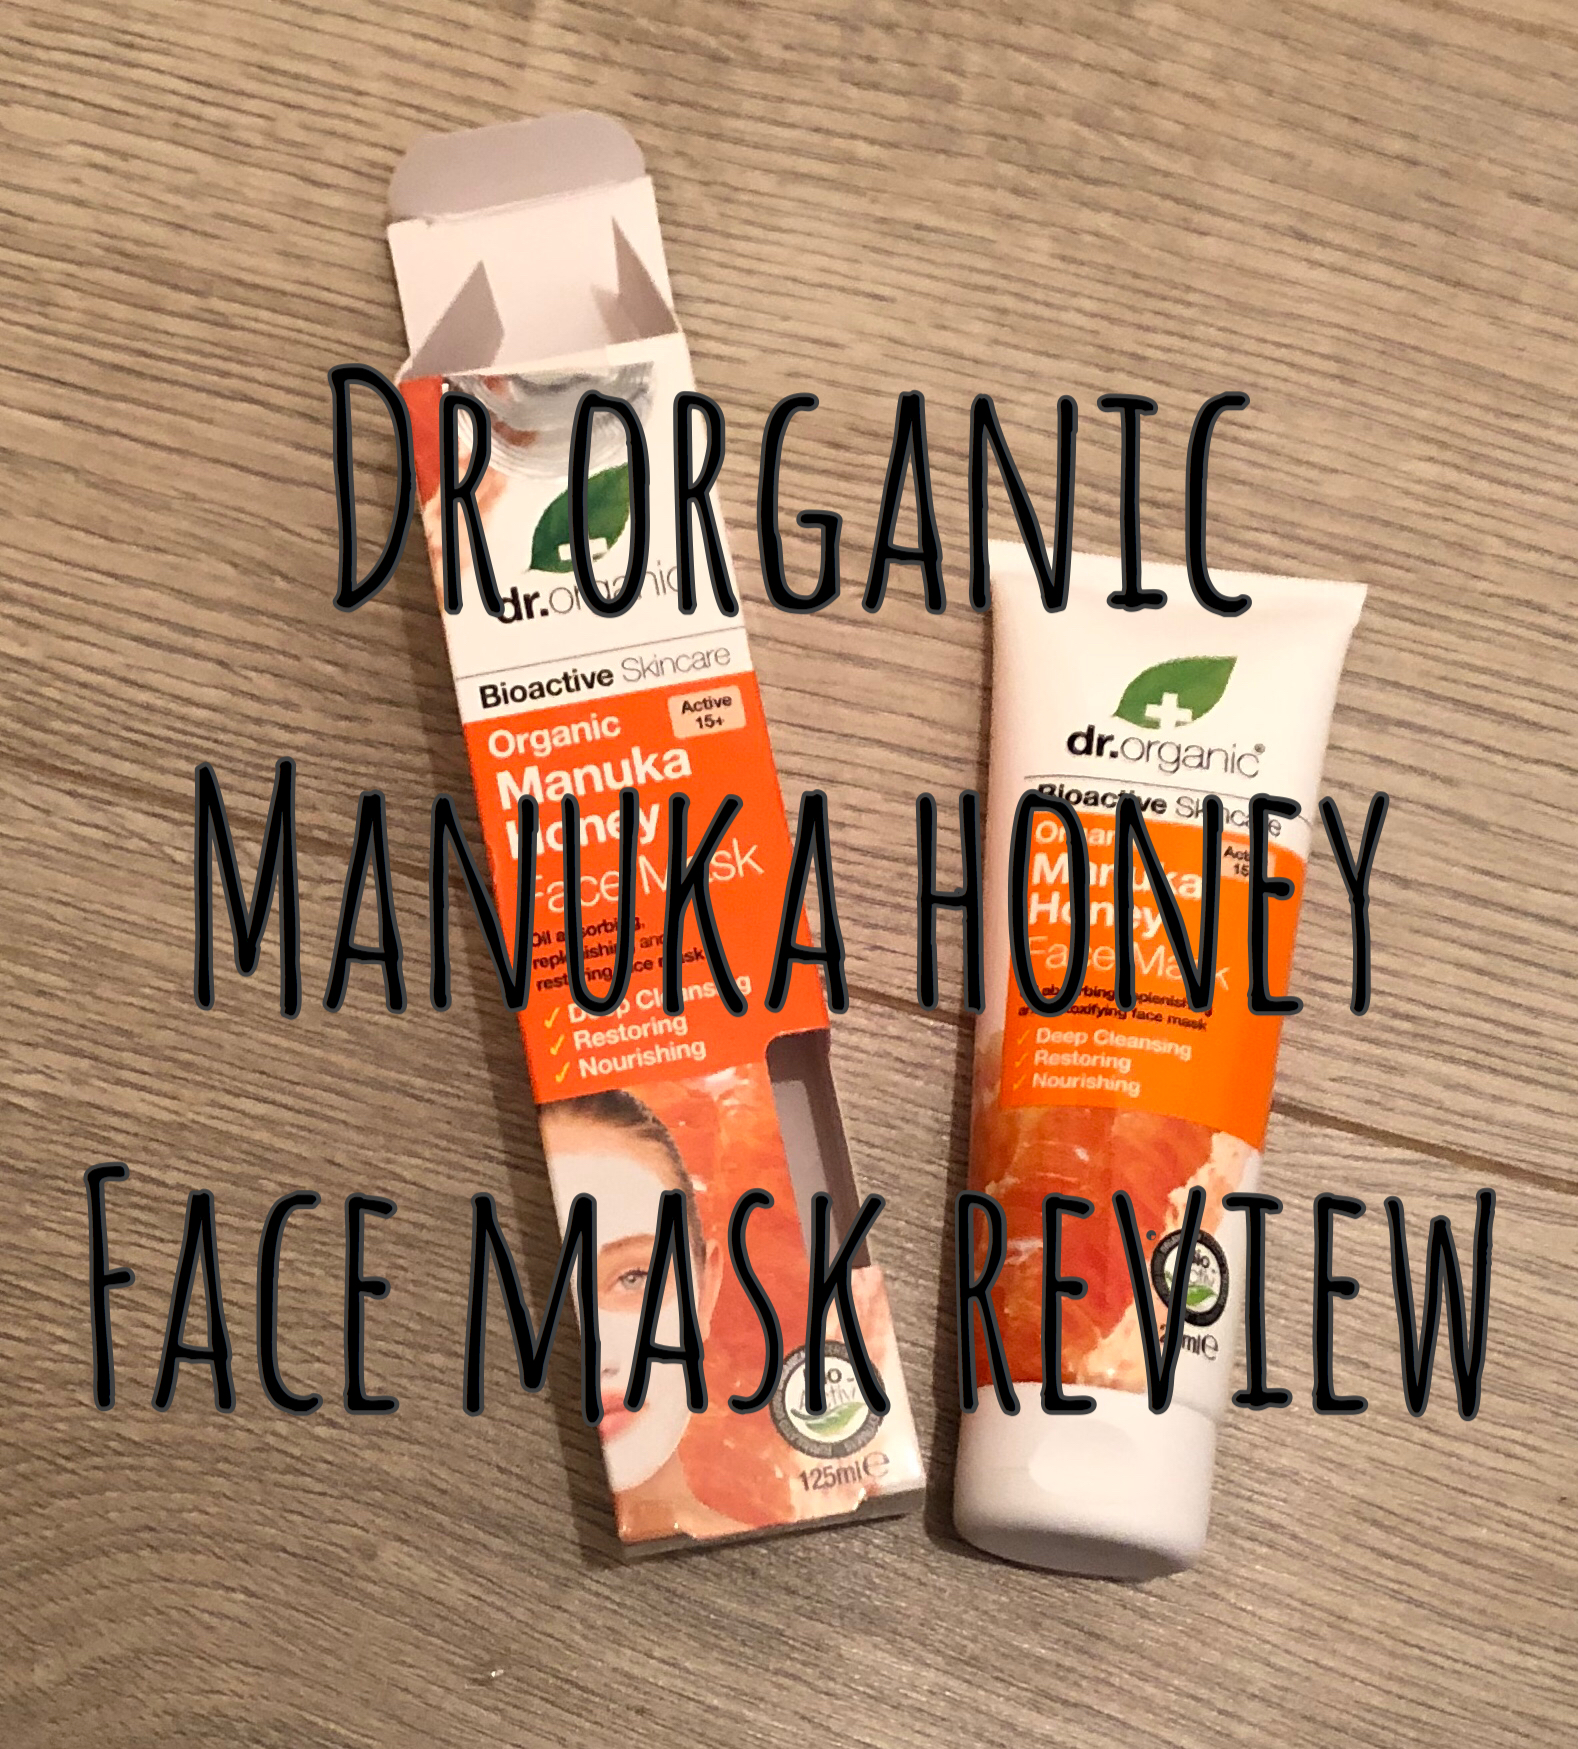 Dr Organic – Manuka Honey Face Mask Review graphic